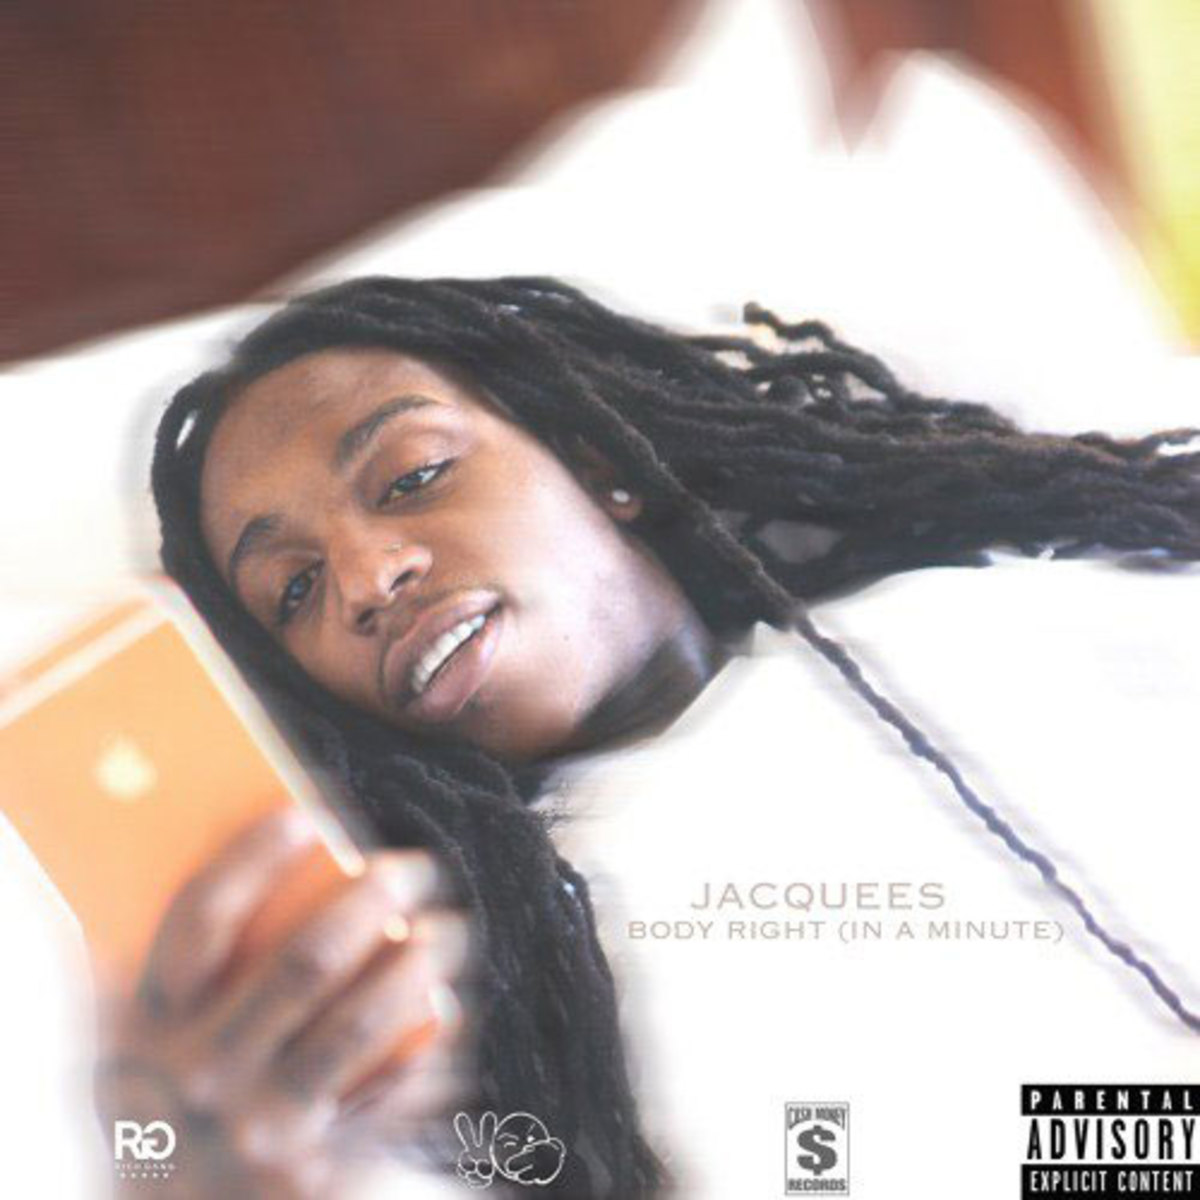 jacquees-body-right-in-a-minute.jpg